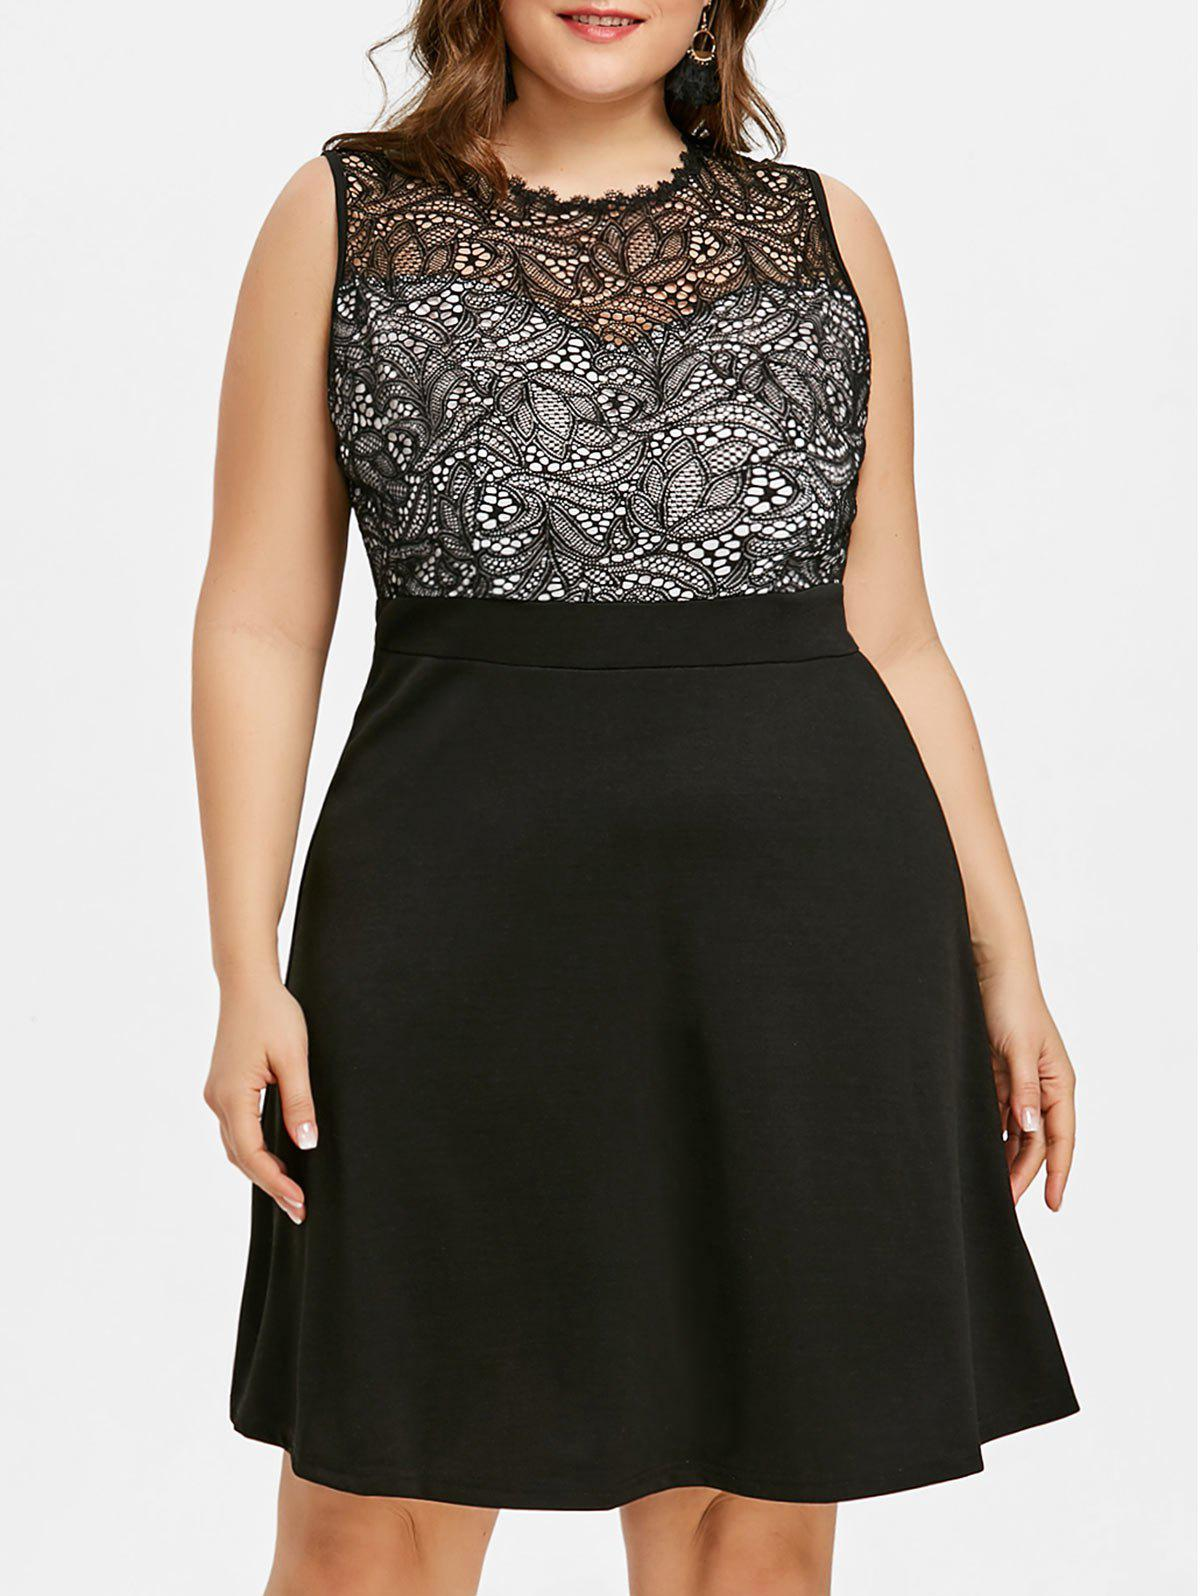 Plus Size Fit and Flare Evening Dress - BLACK XL